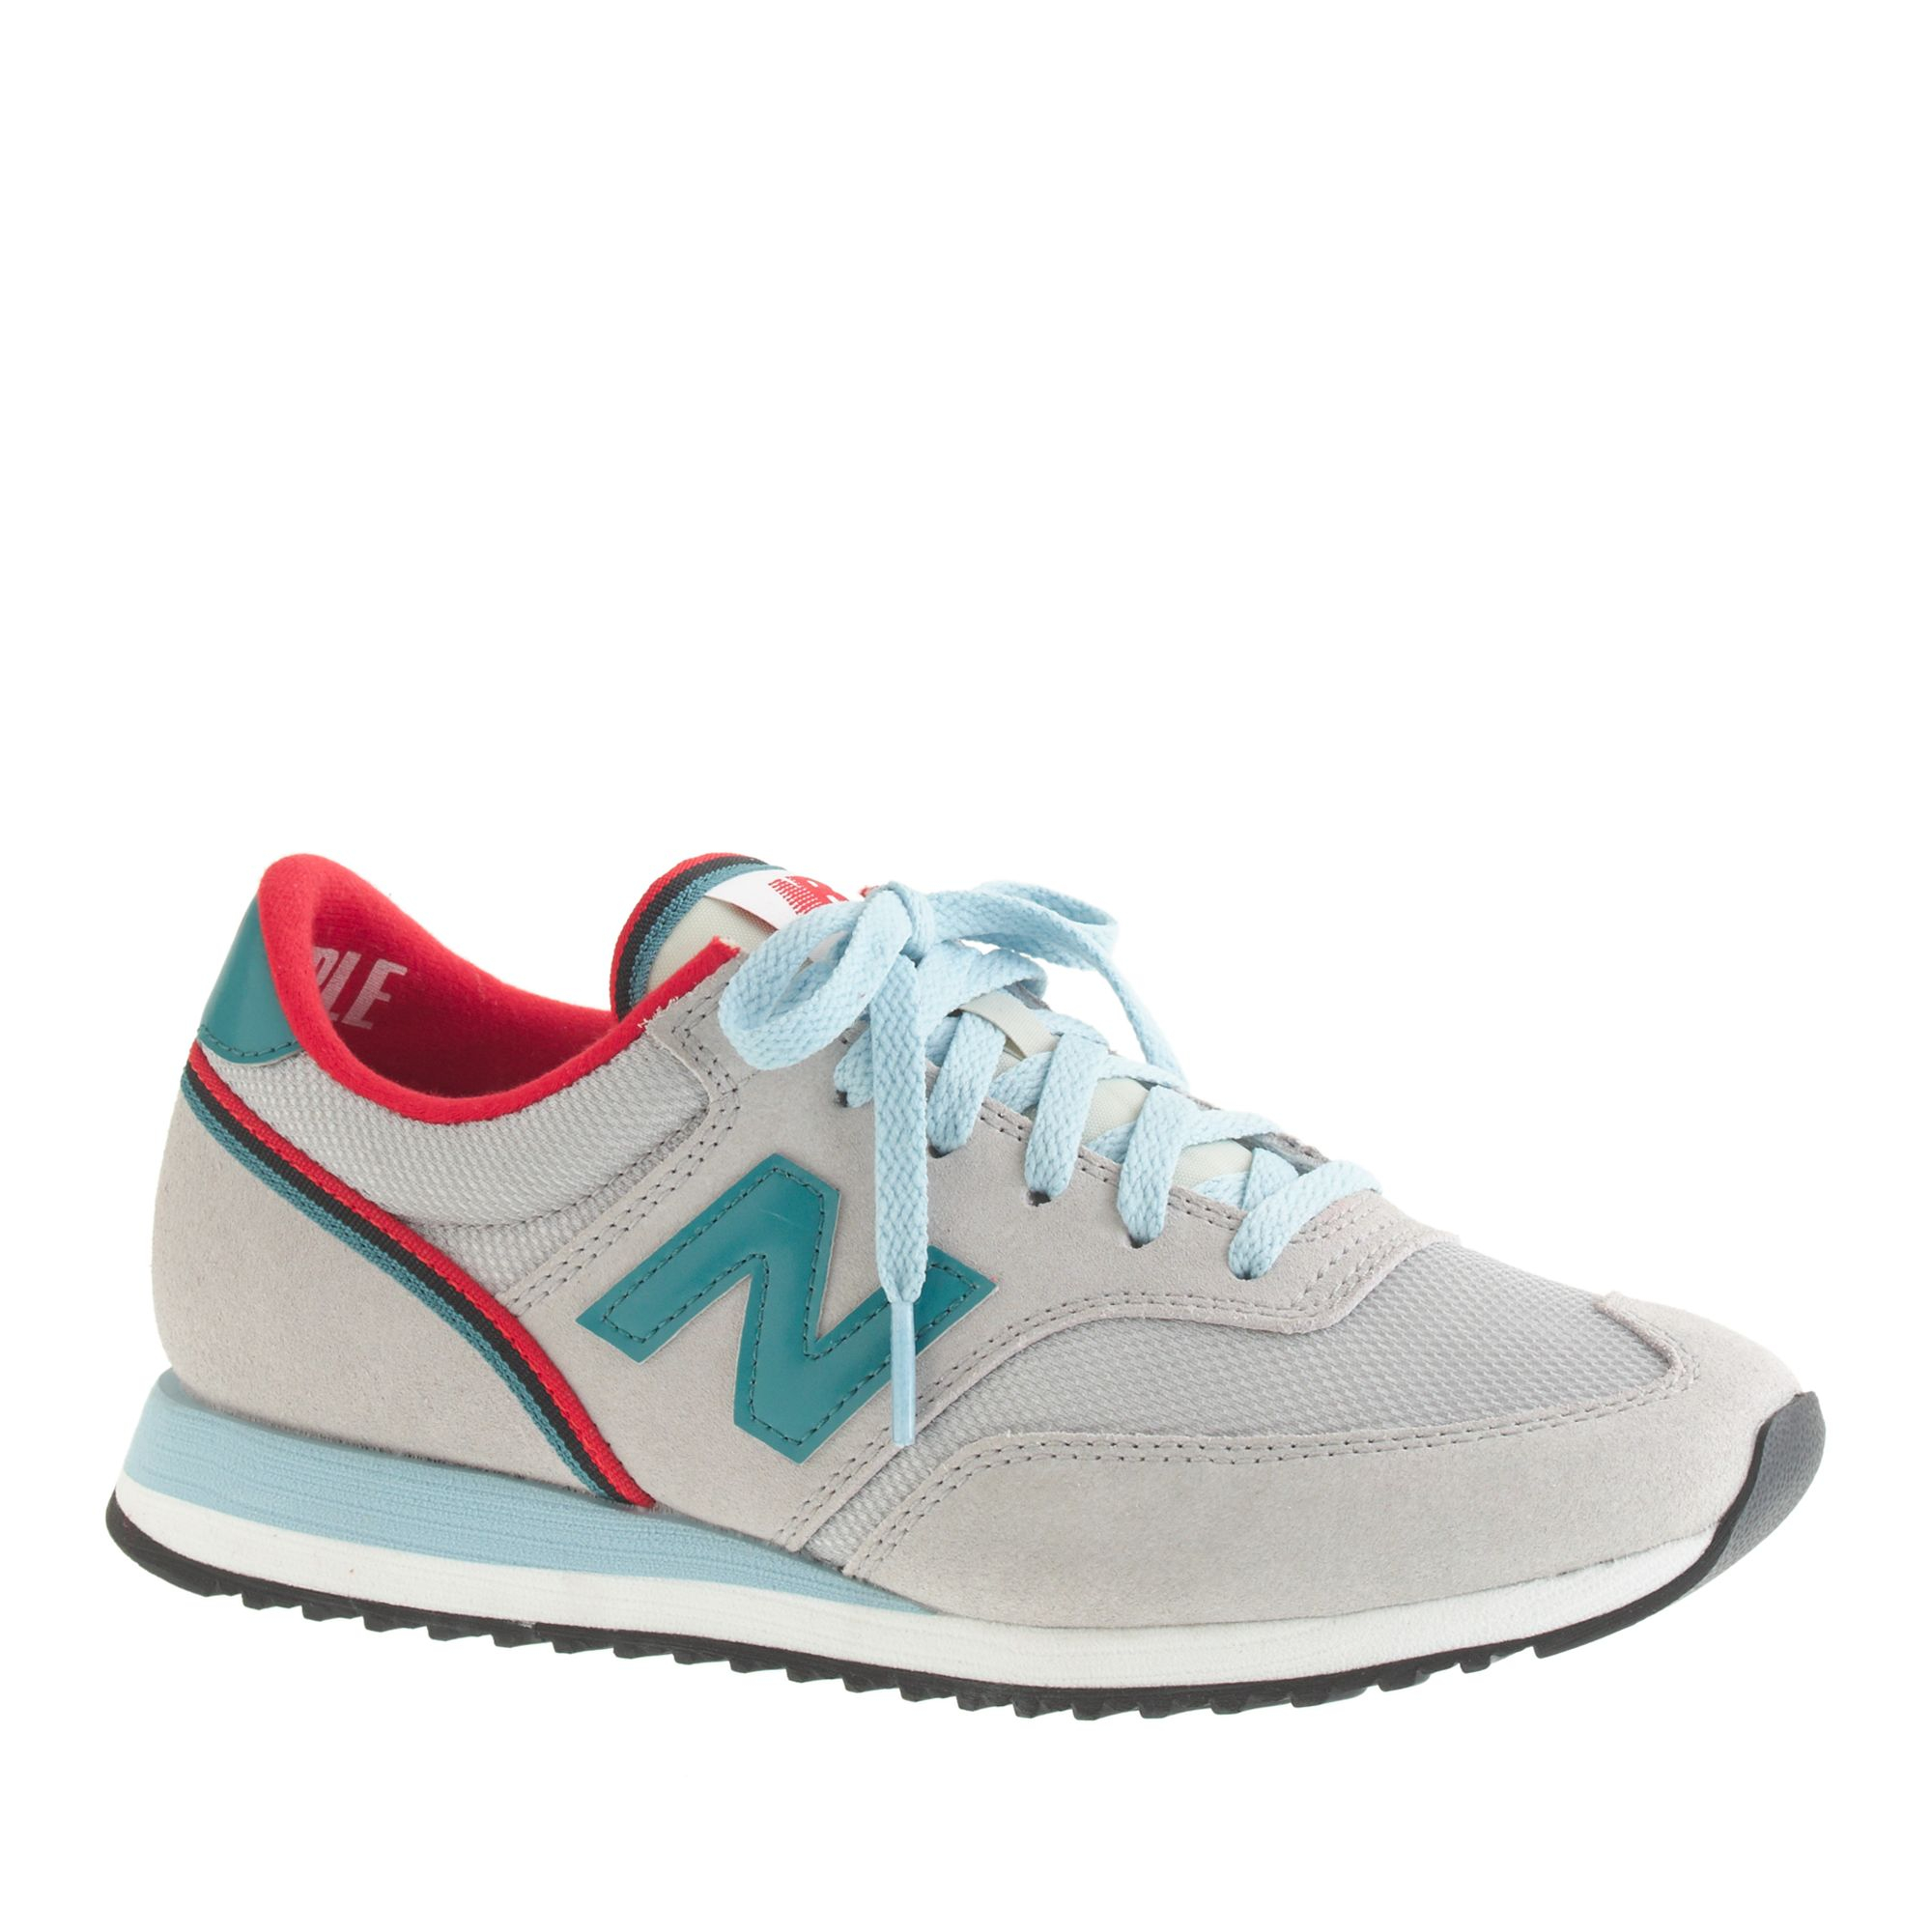 J Crew New Balance 620 Sneakers In Cream Natural Lyst